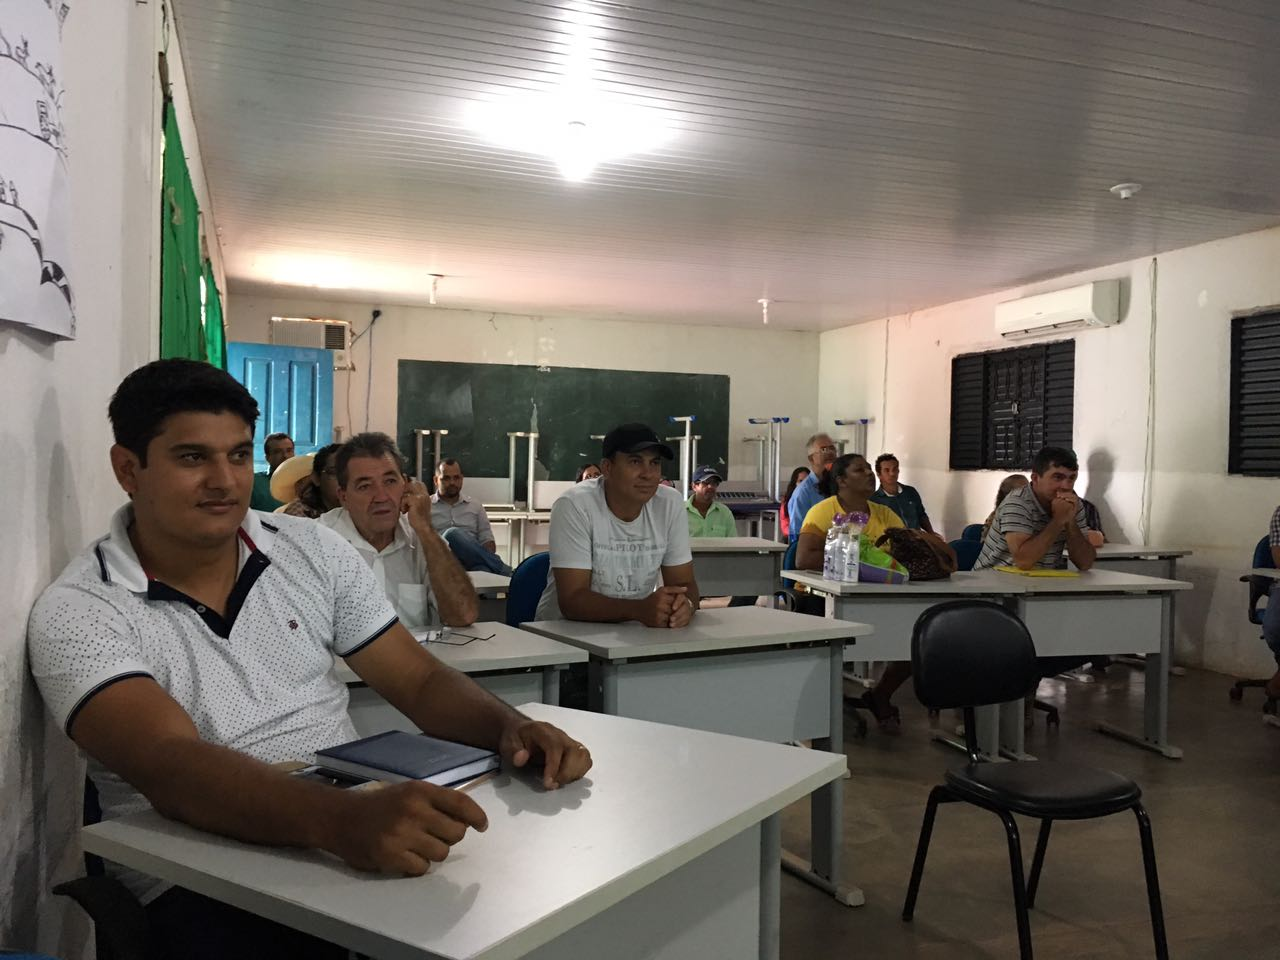 A file photo of a multi-stakeholder meeting in Confresa, Mato Grosso, Brazil, held as part of Earth Innovation Institute's efforts to establish jurisdictional certification in the state of Mato Grosso. (Joyce Brandao)